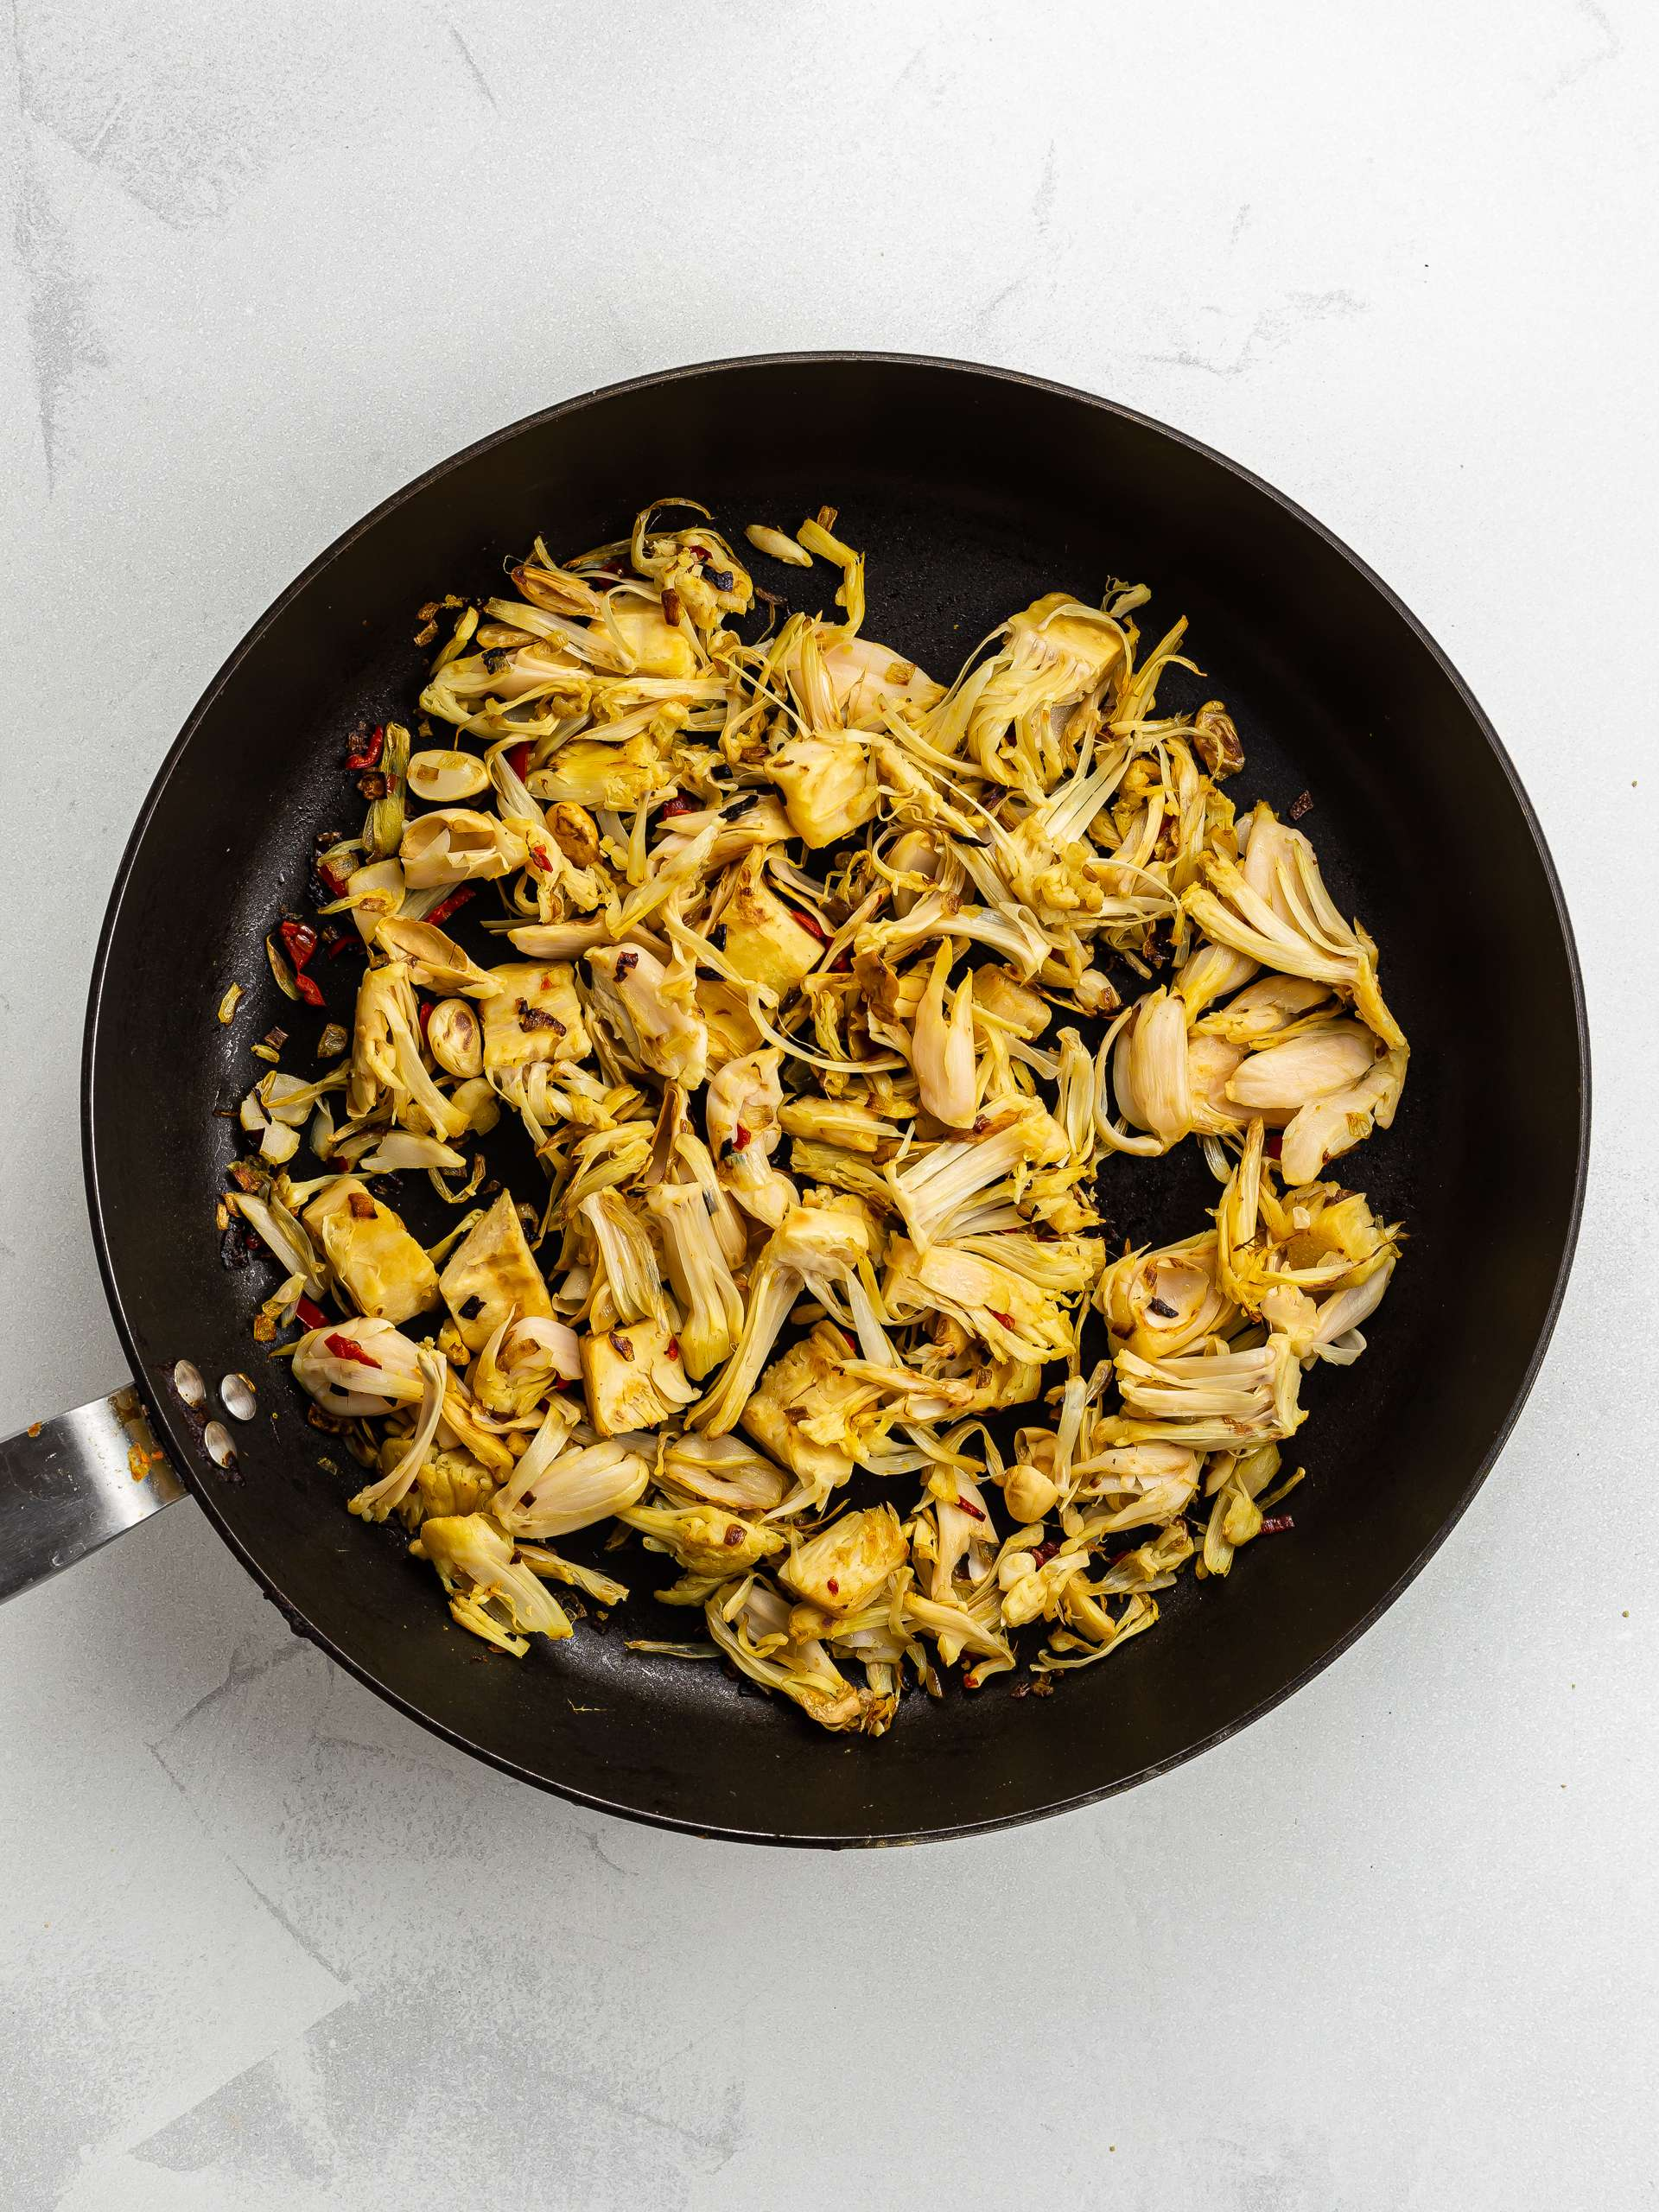 cooked pulled jackfruit in a skillet